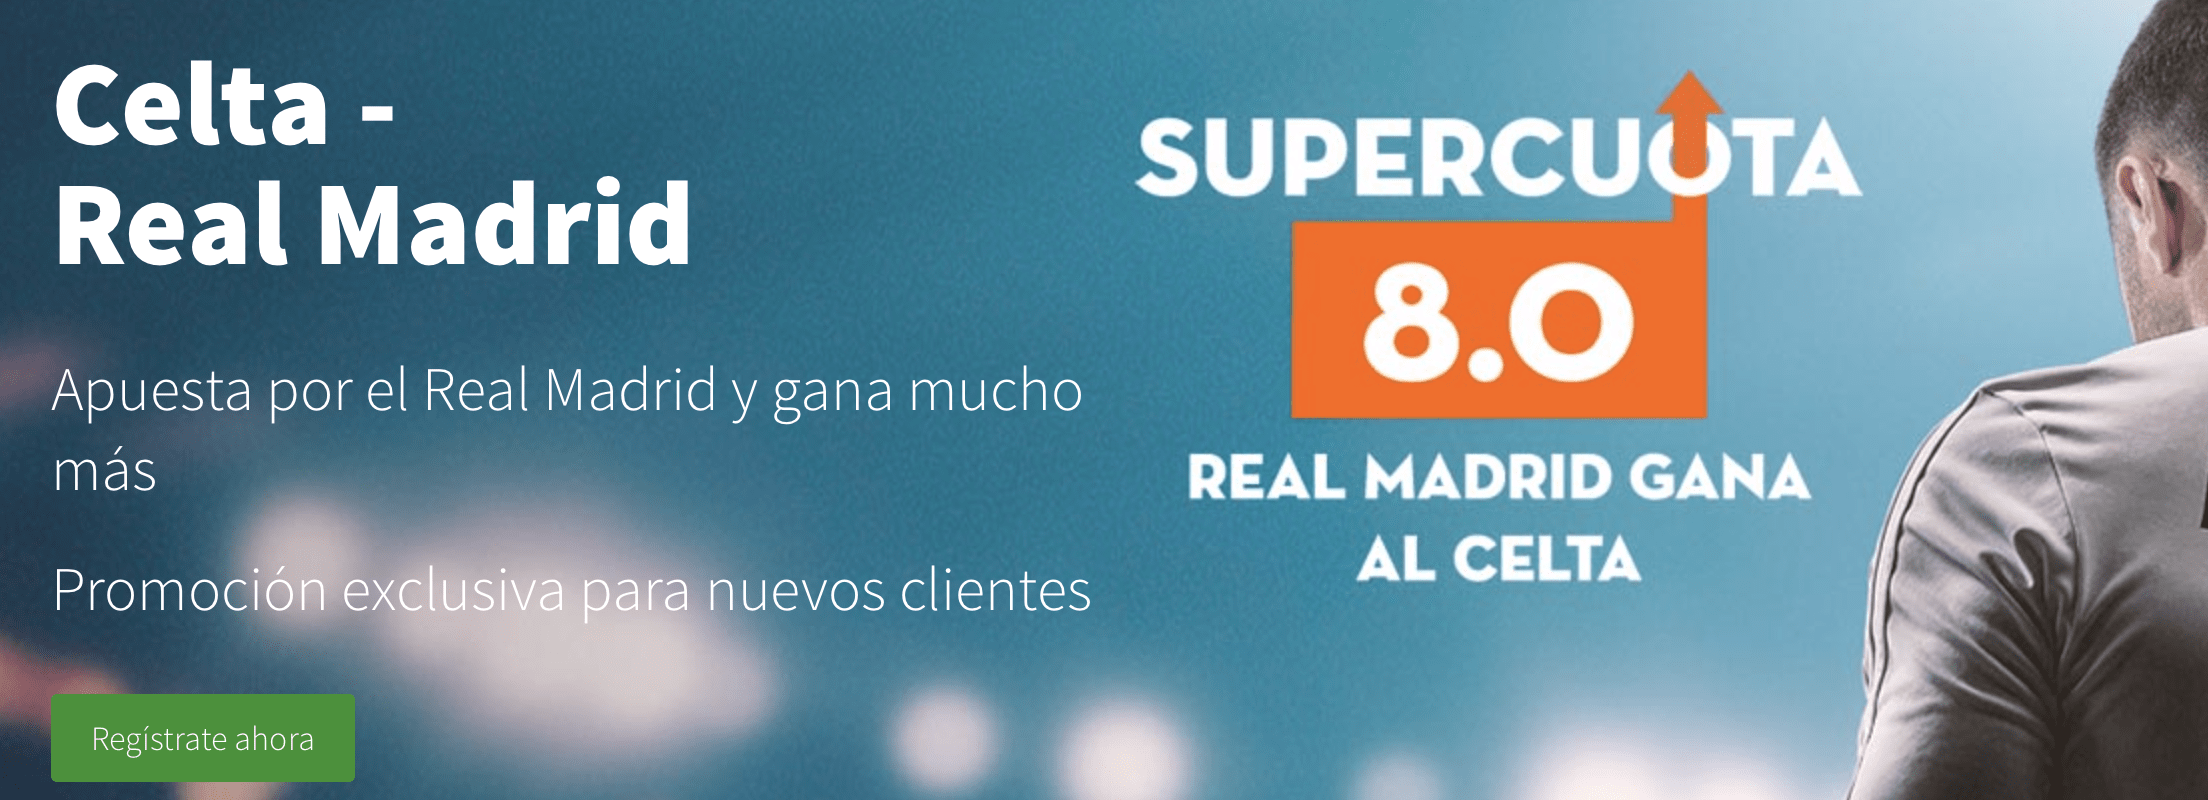 Supercuotas betsson La Liga : Celta - Real Madrid